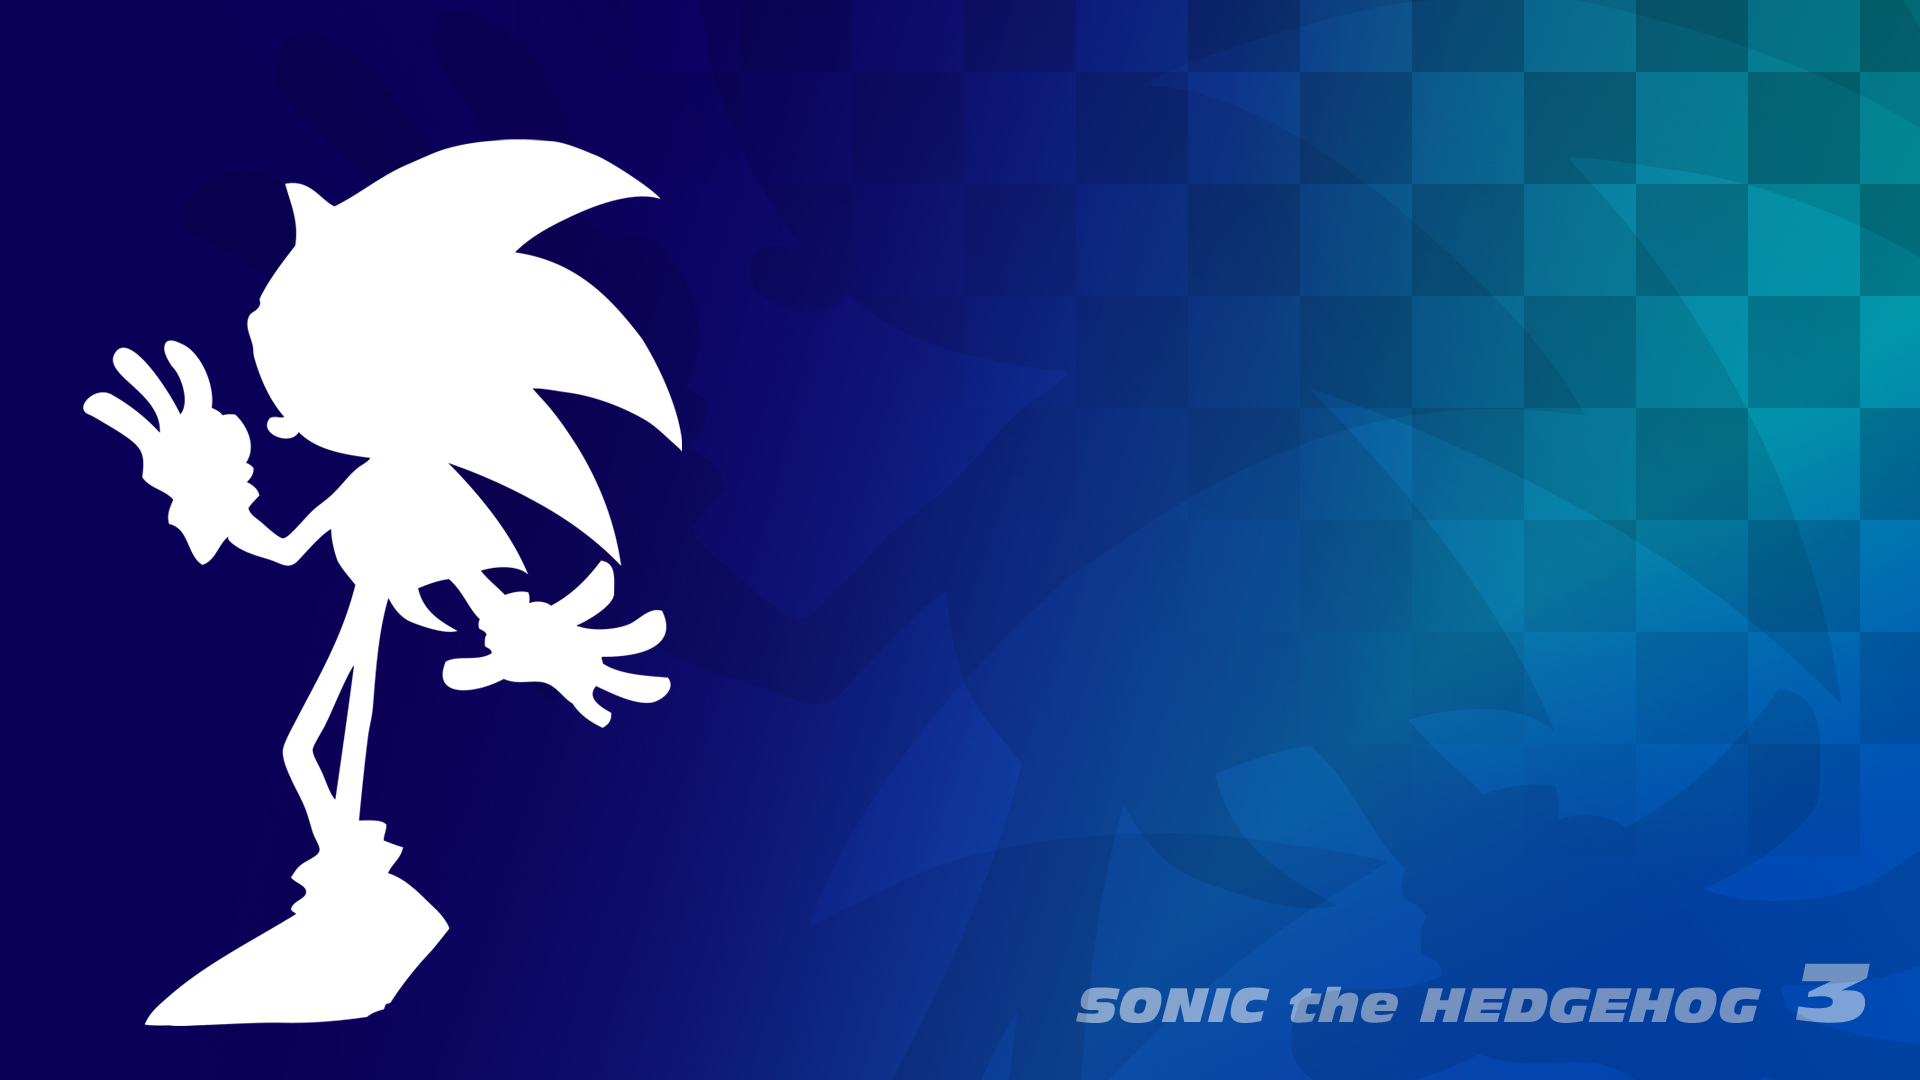 sonic 3 wallpaper by therealarien on deviantart